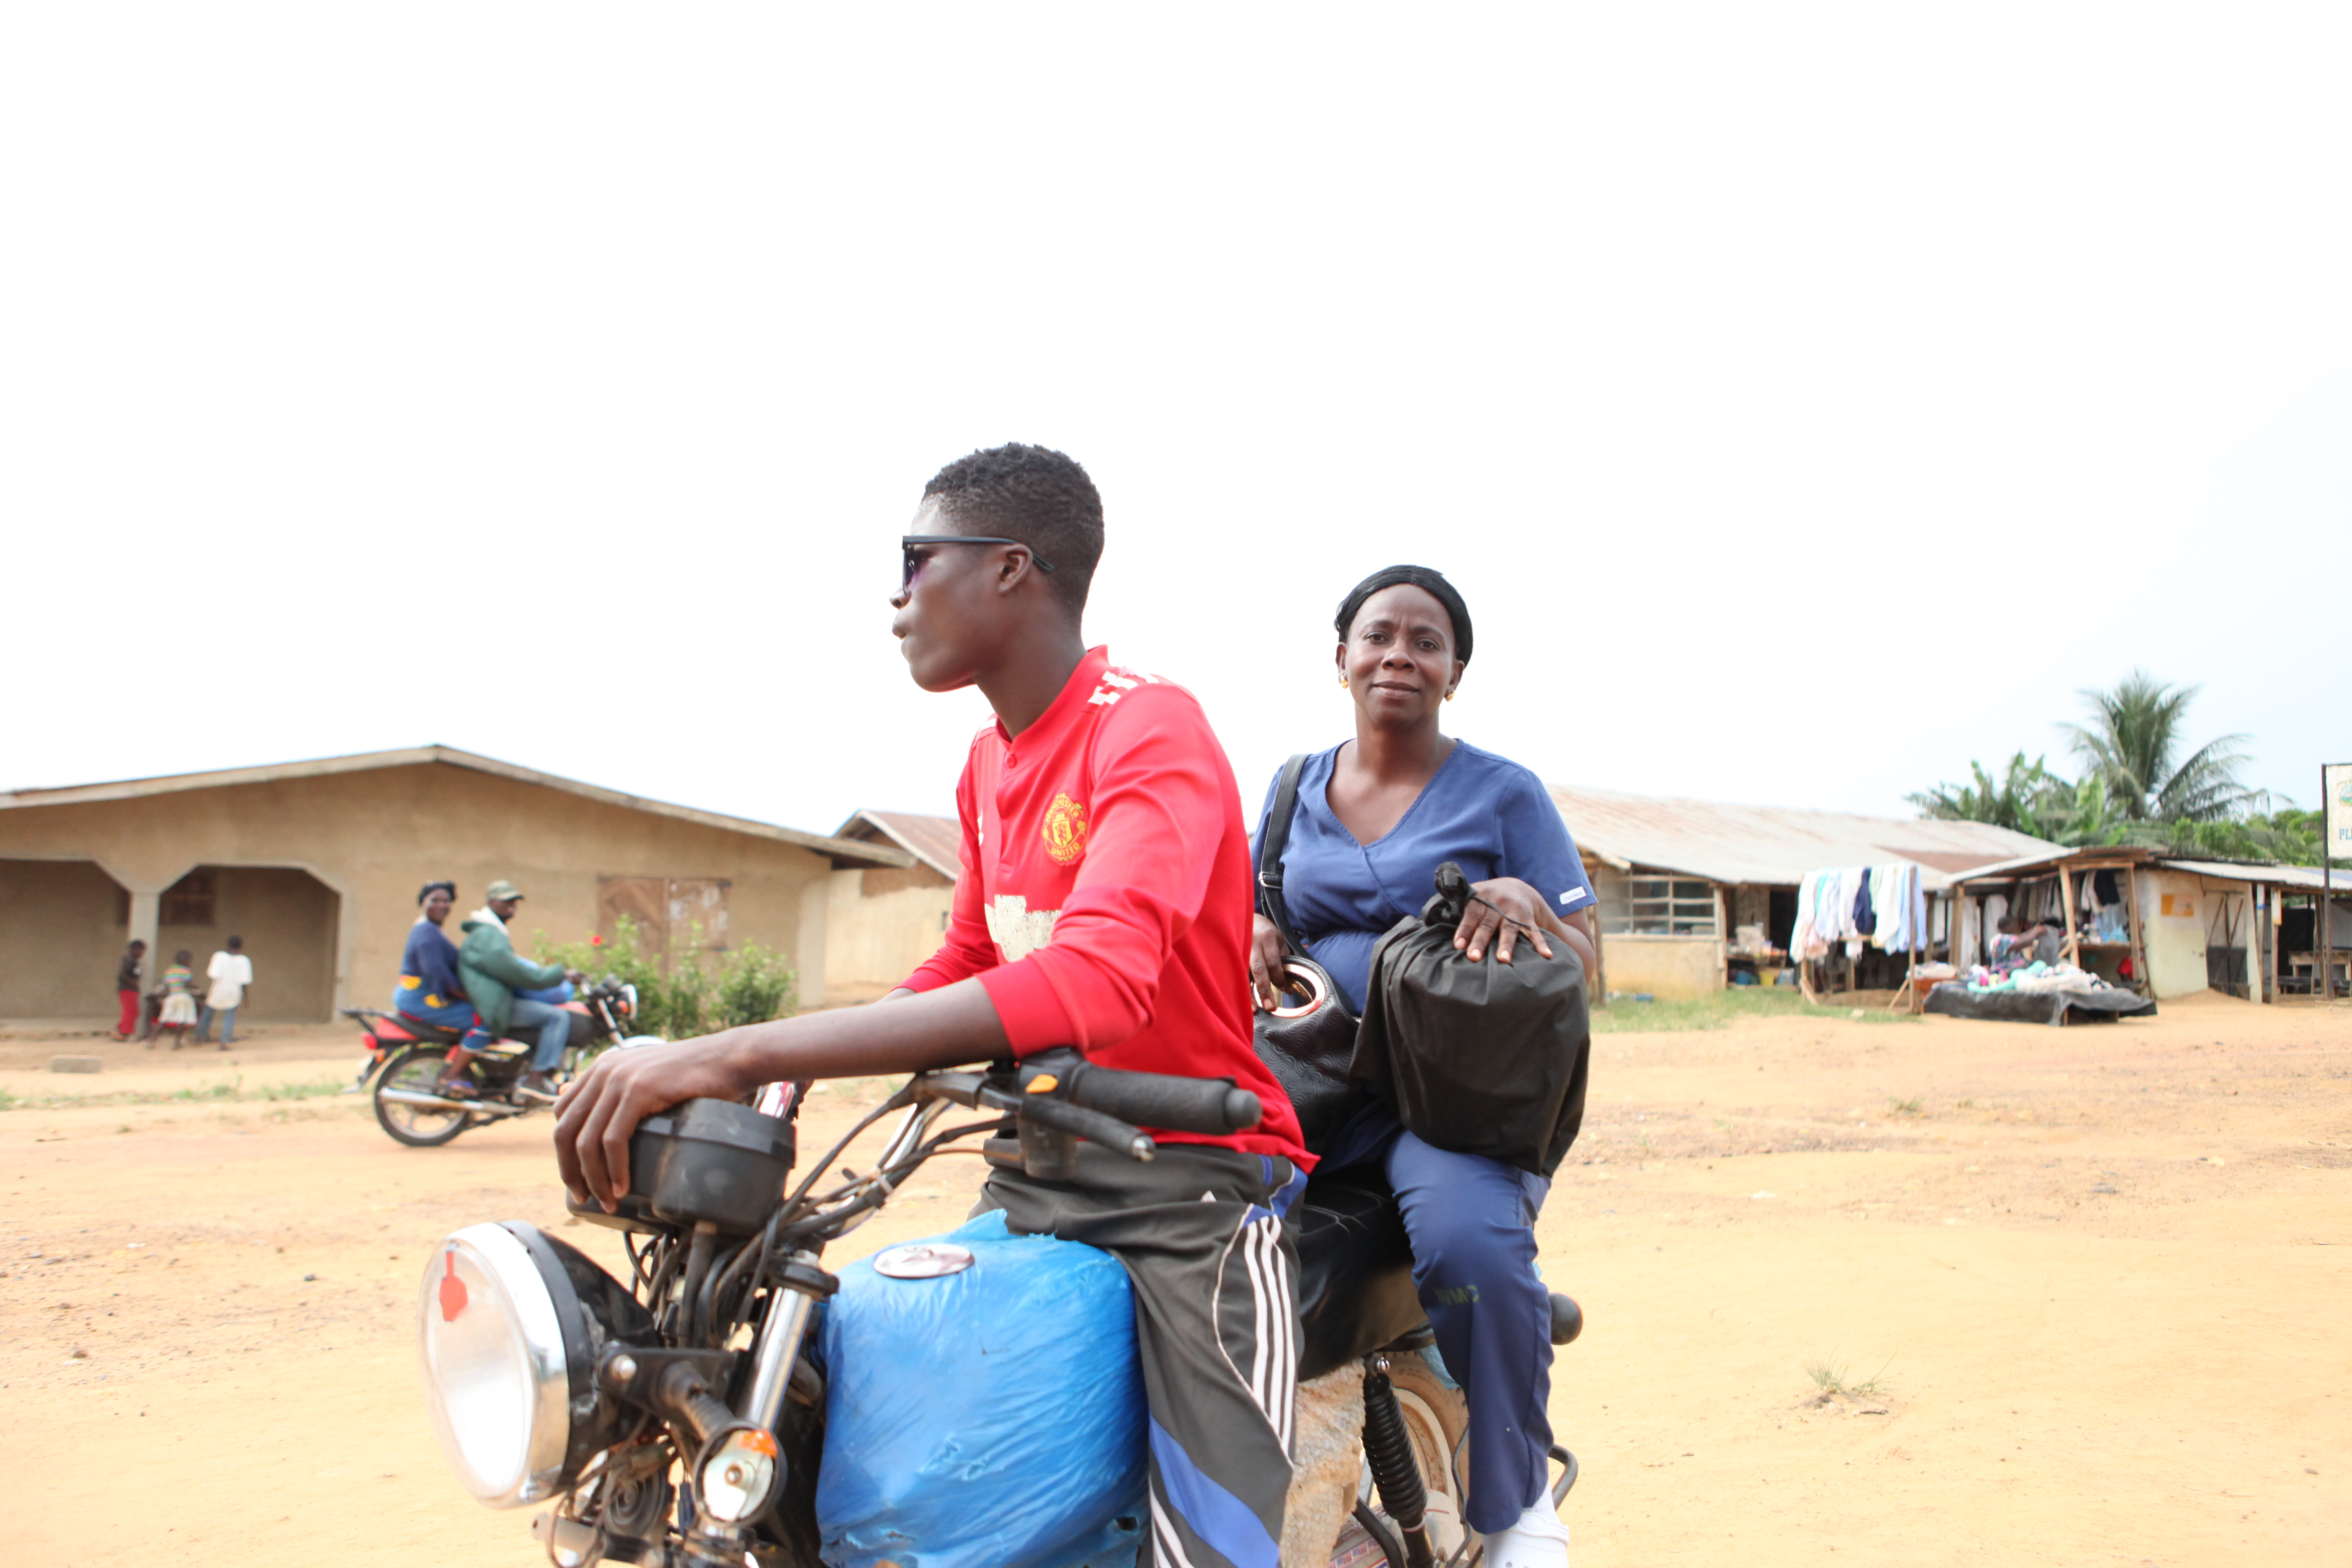 midwife arrives at Pleebo Health Center by motorcycle